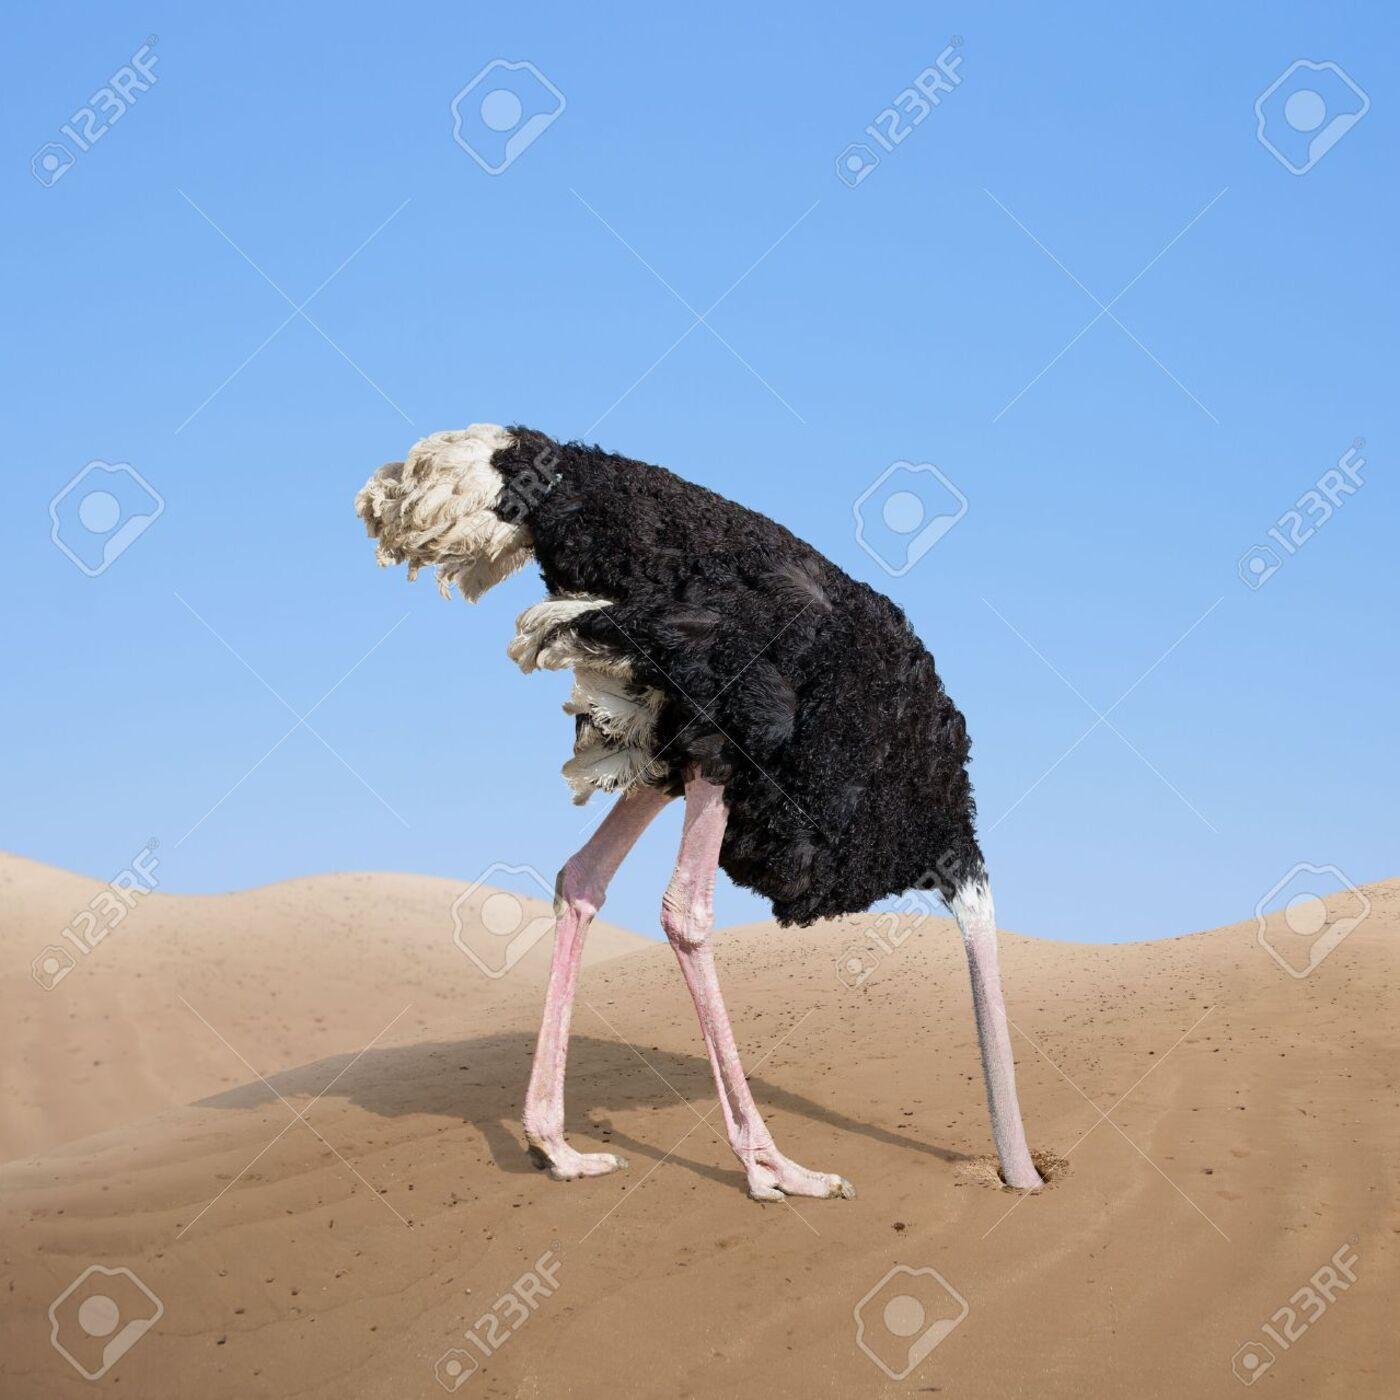 Does an ostrich really stick its head in the sand?